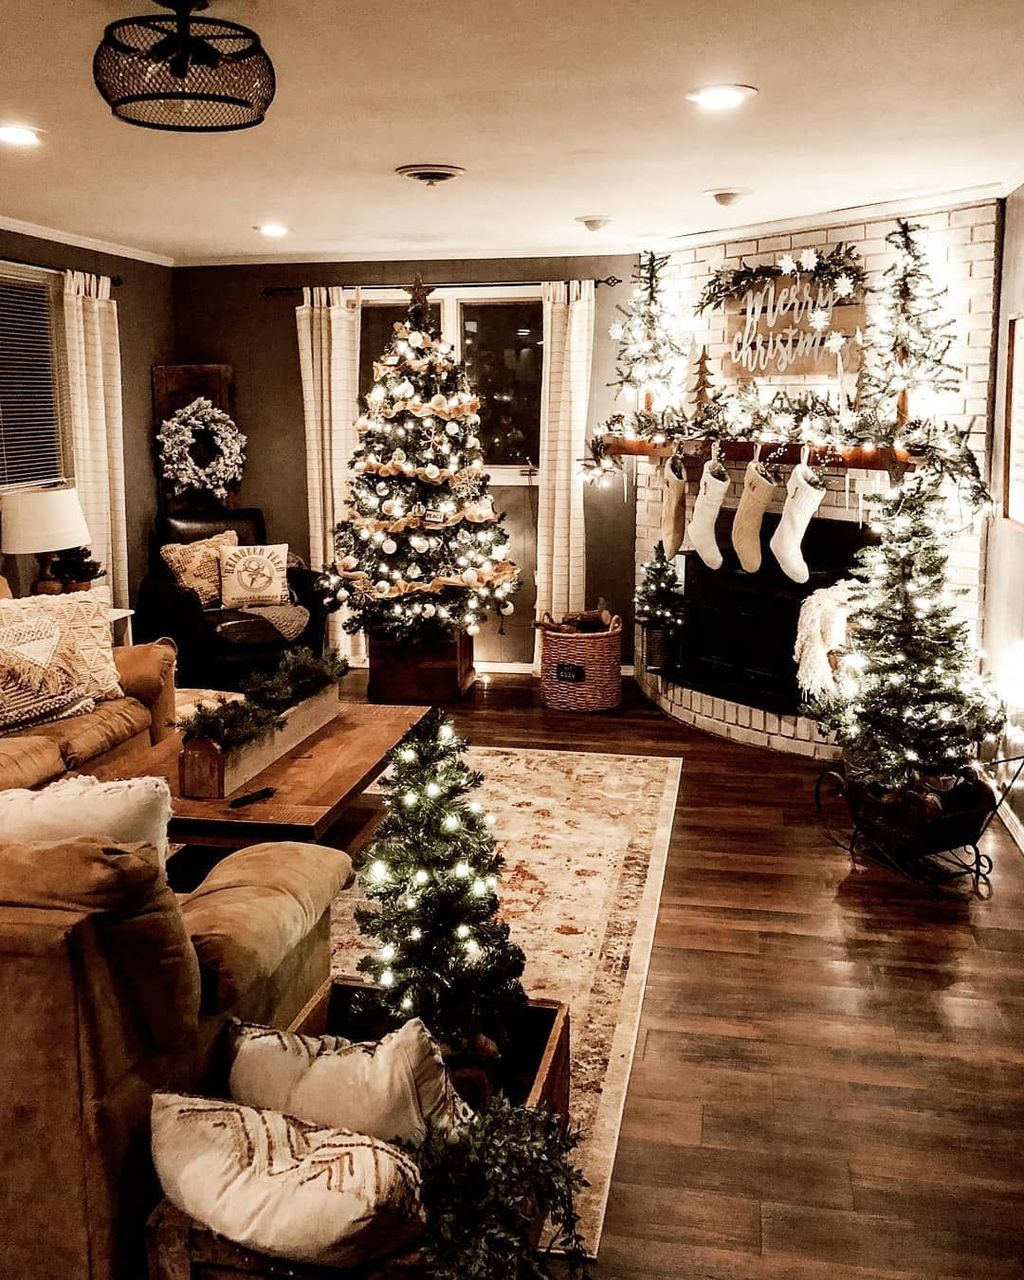 Beautiful Christmas Interior Design Ideas You Never Seen Before 35